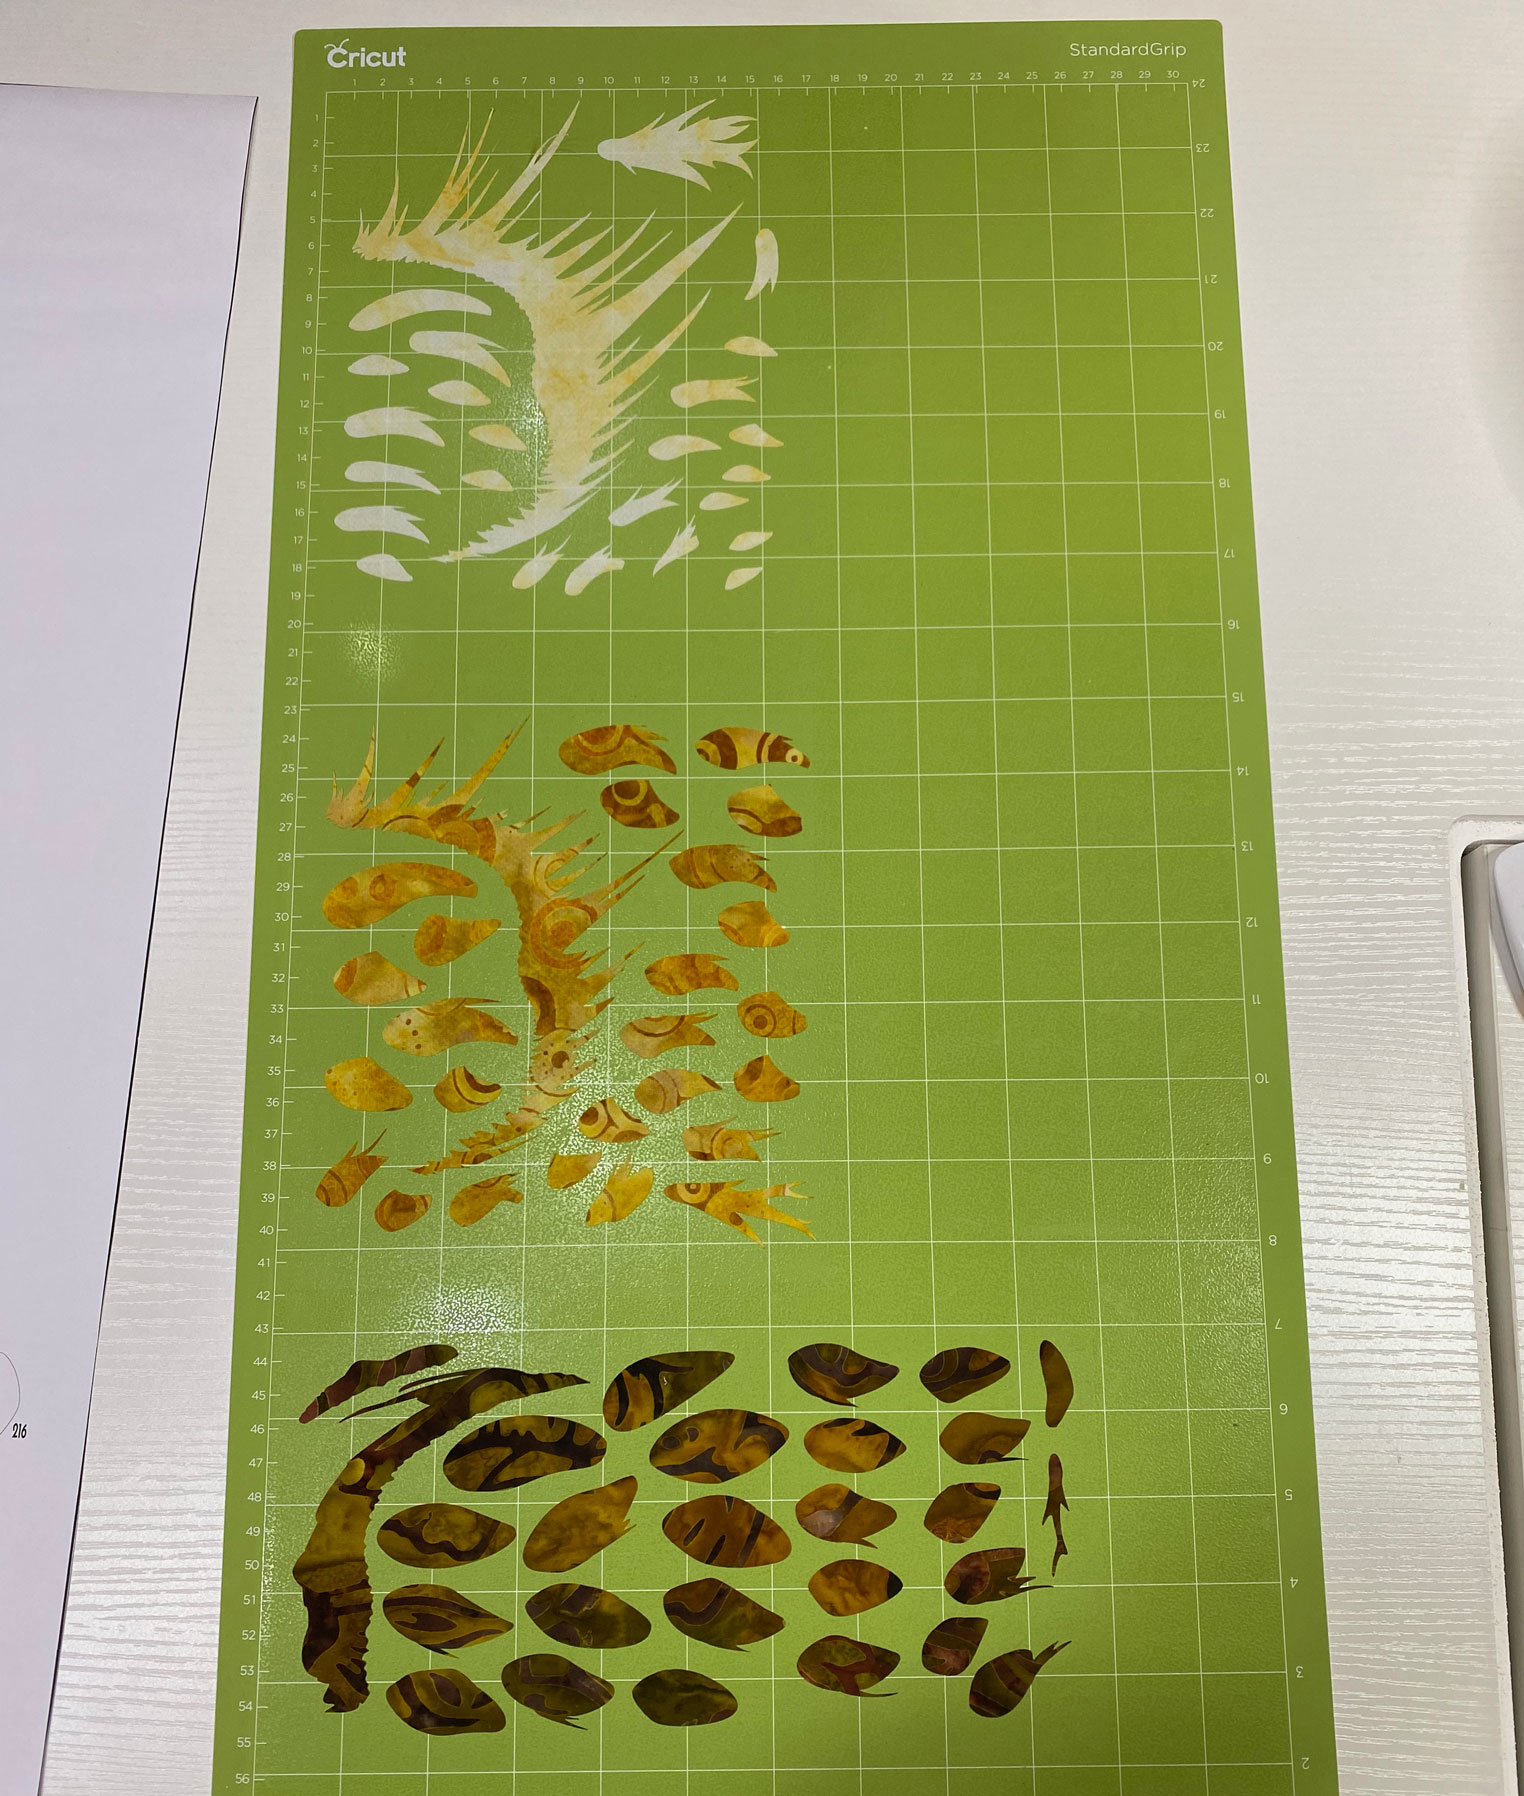 Cricut cut pieces of fabric